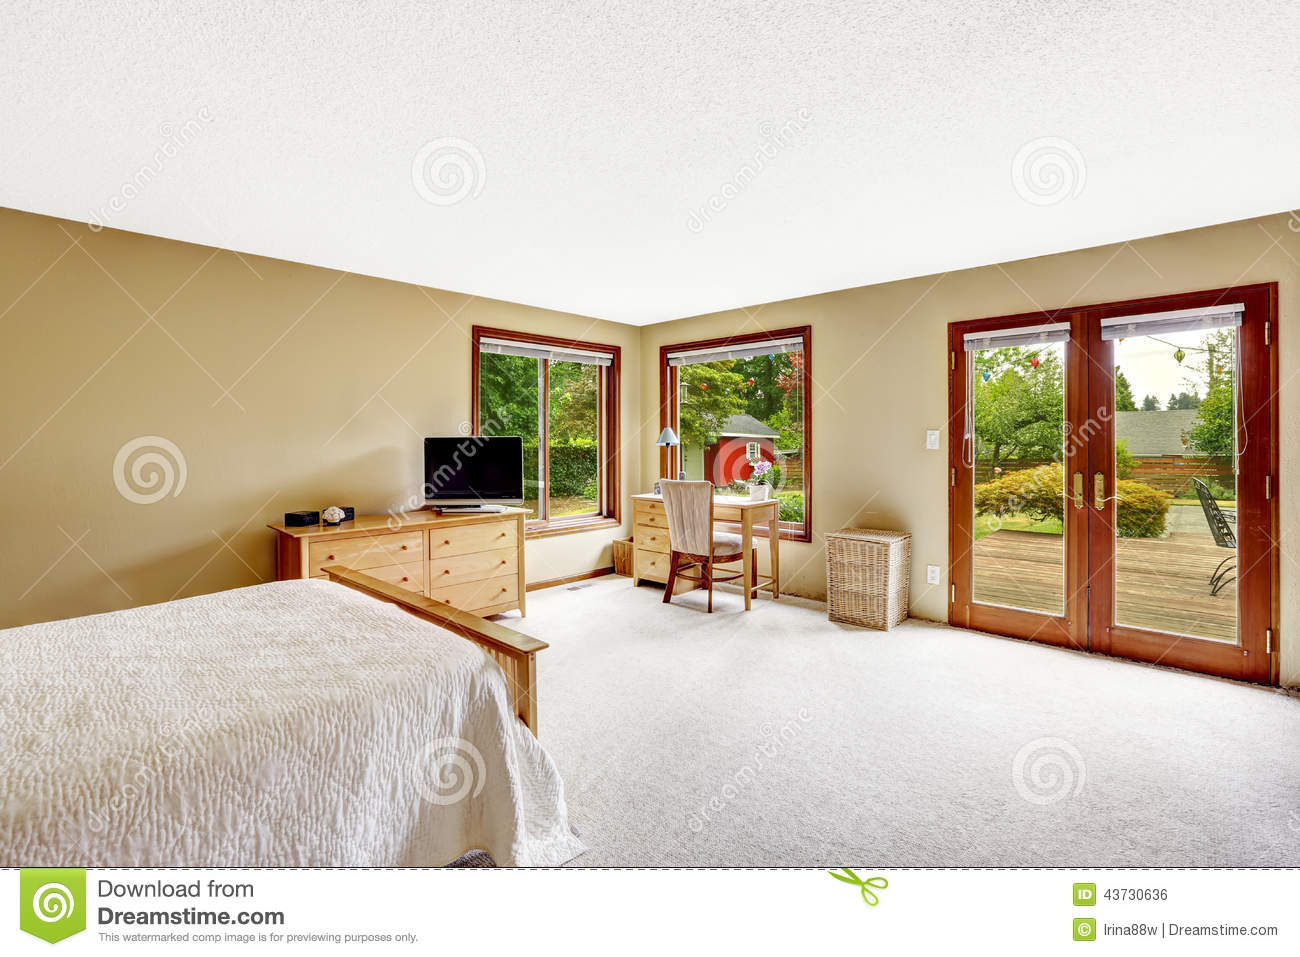 Bedroom With Walkout Basement Deck Stock Photo Image Of